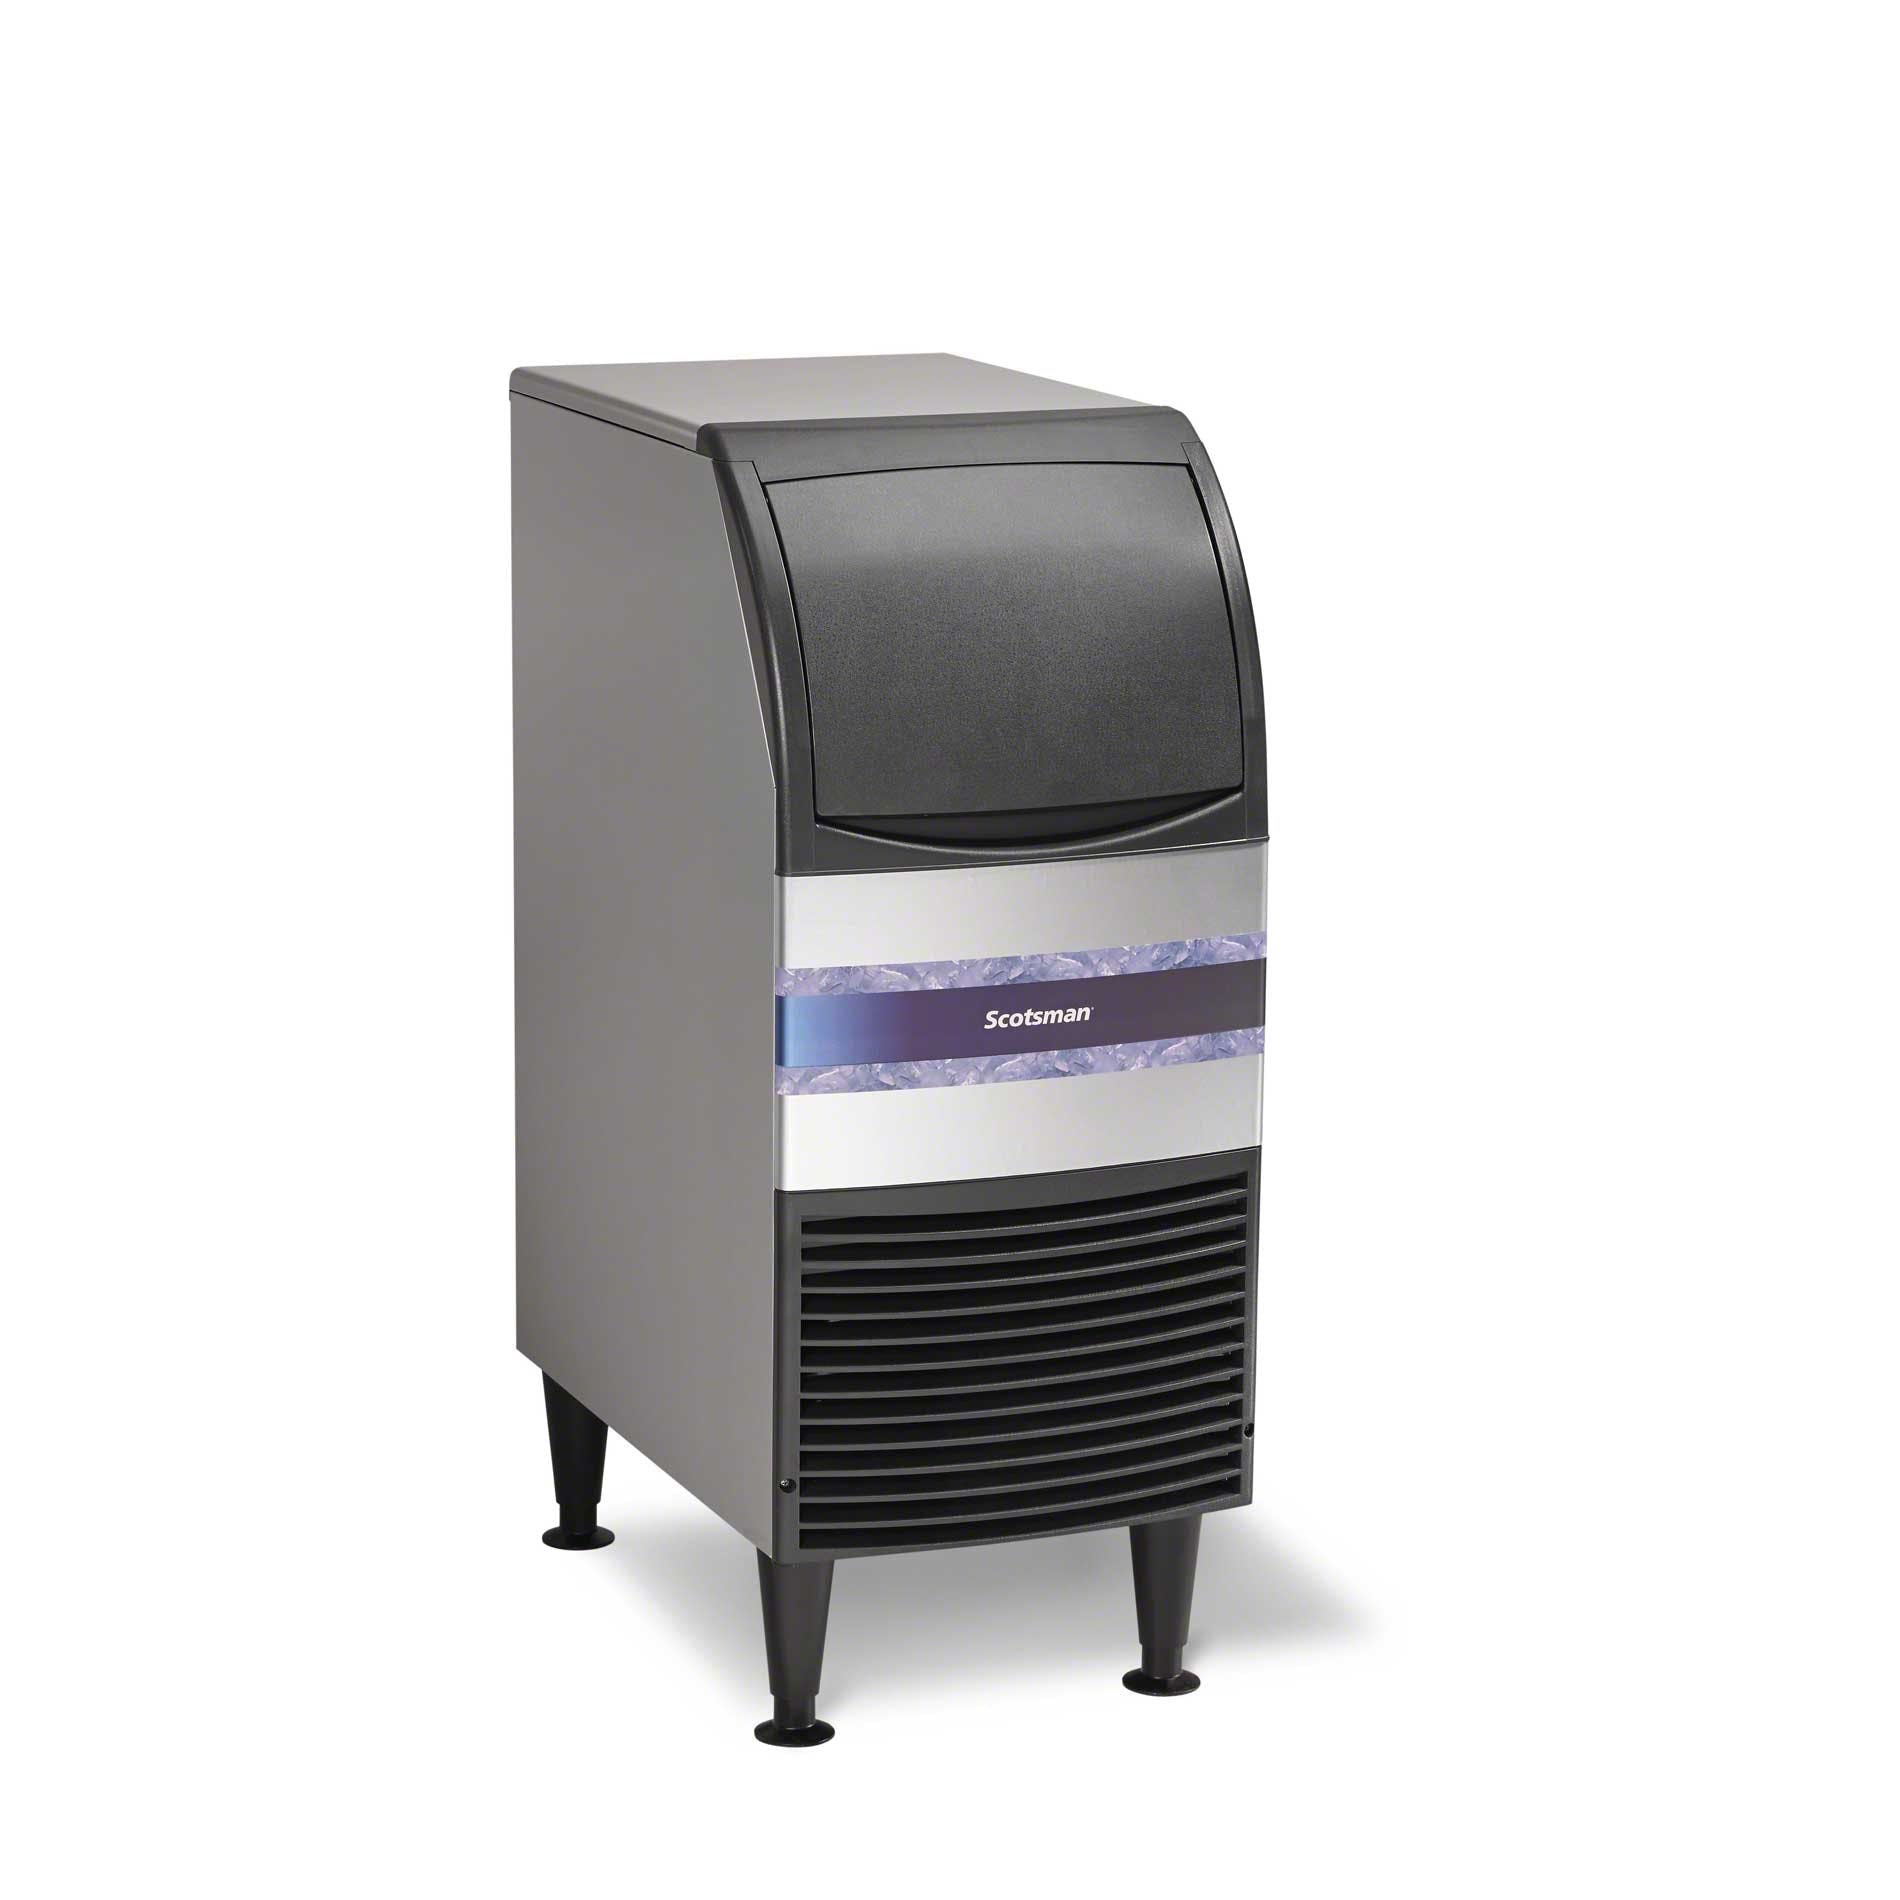 Scotsman - CU0415MA-1 50 lb Self-Contained Undercounter Cube Ice Machine - Essential™ Series Ice machine sold by Food Service Warehouse